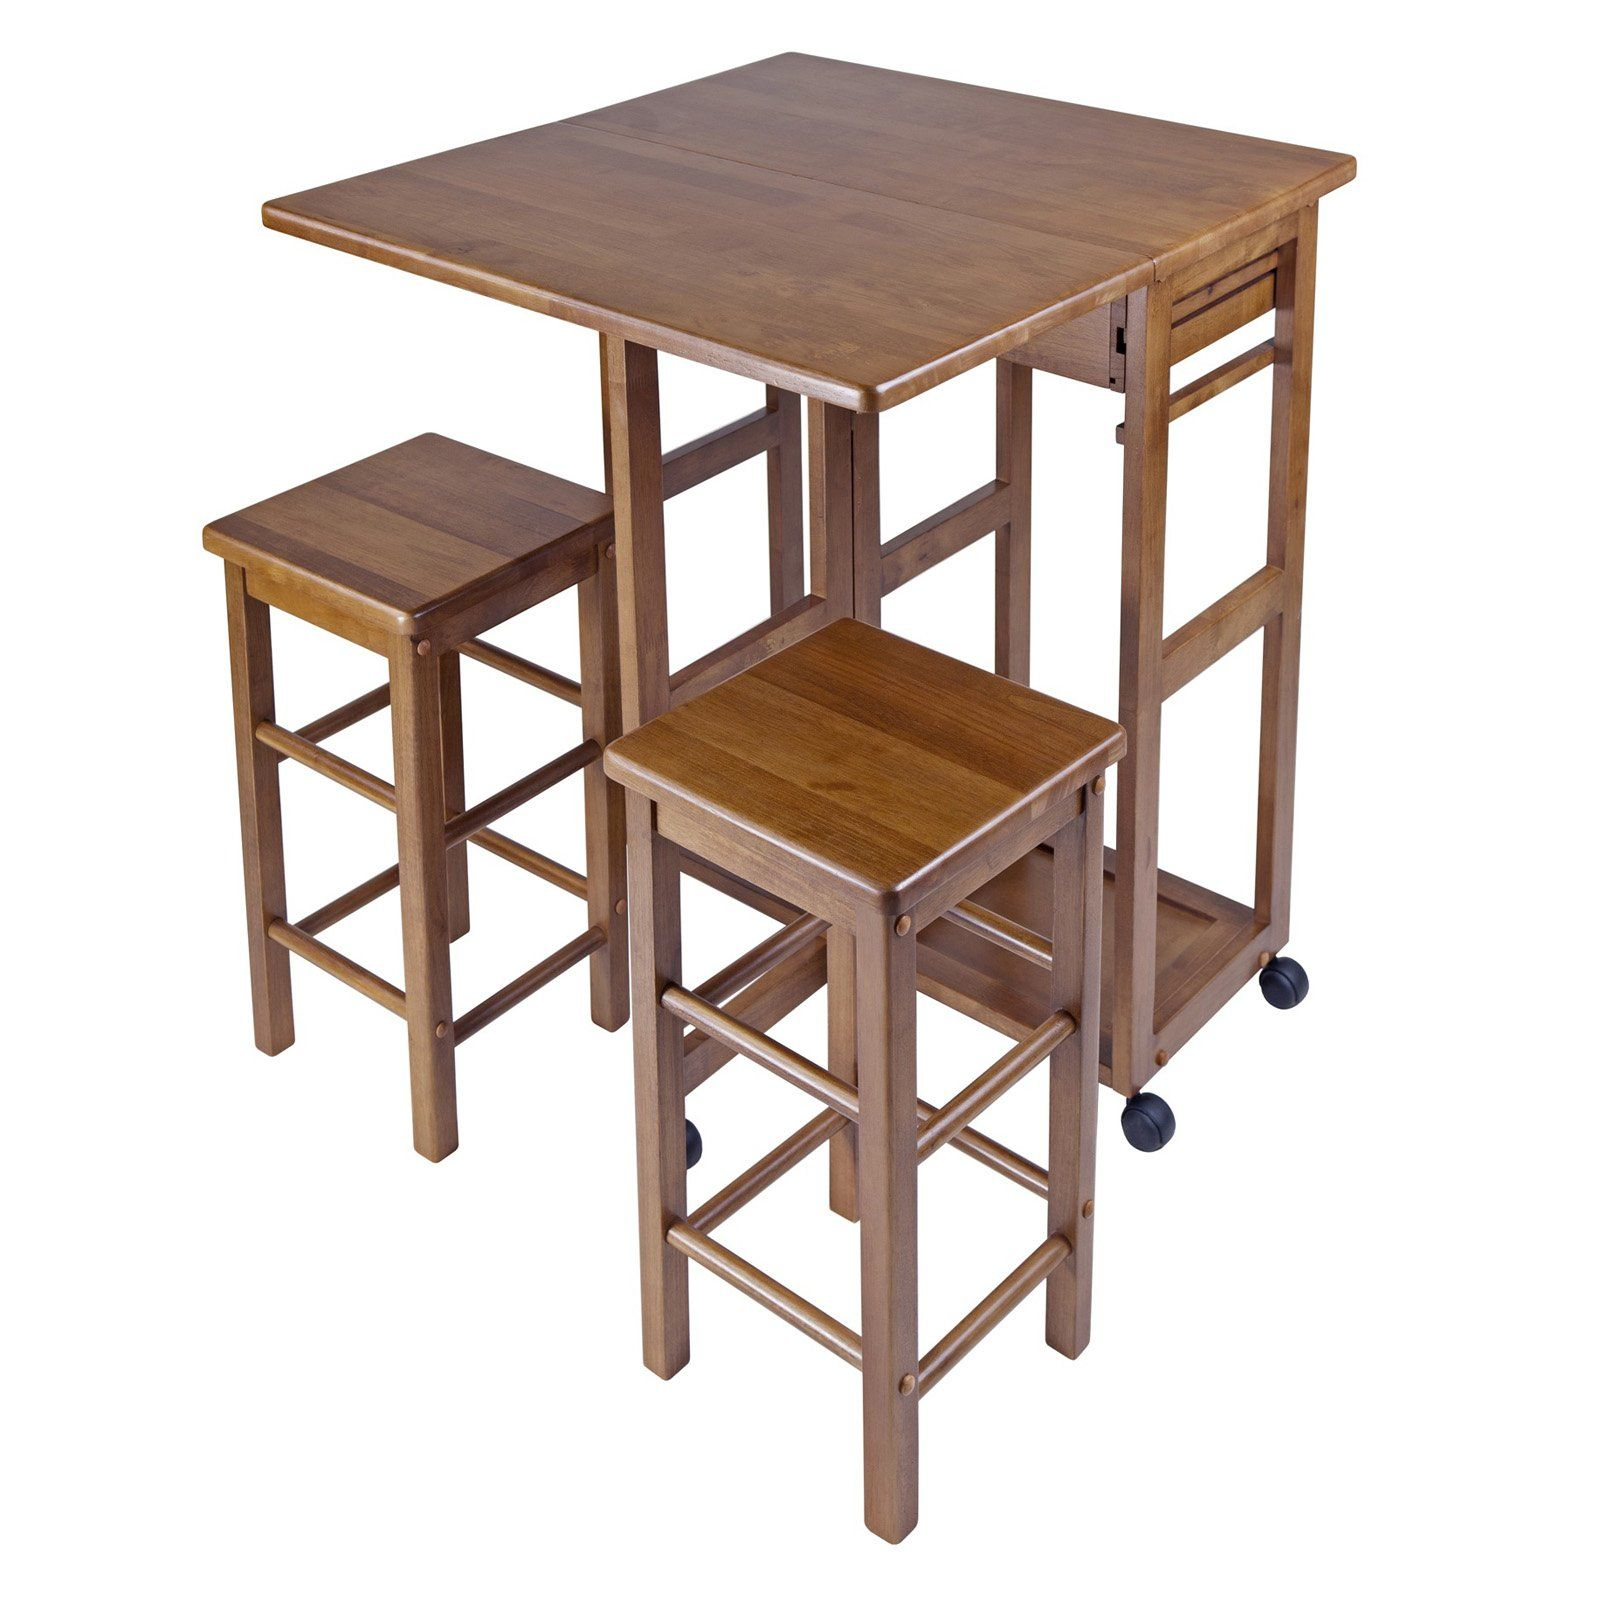 Winsome E Saver 3 Piece Small Table With 2 Nesting Stools Dining Sets At Hayneedle